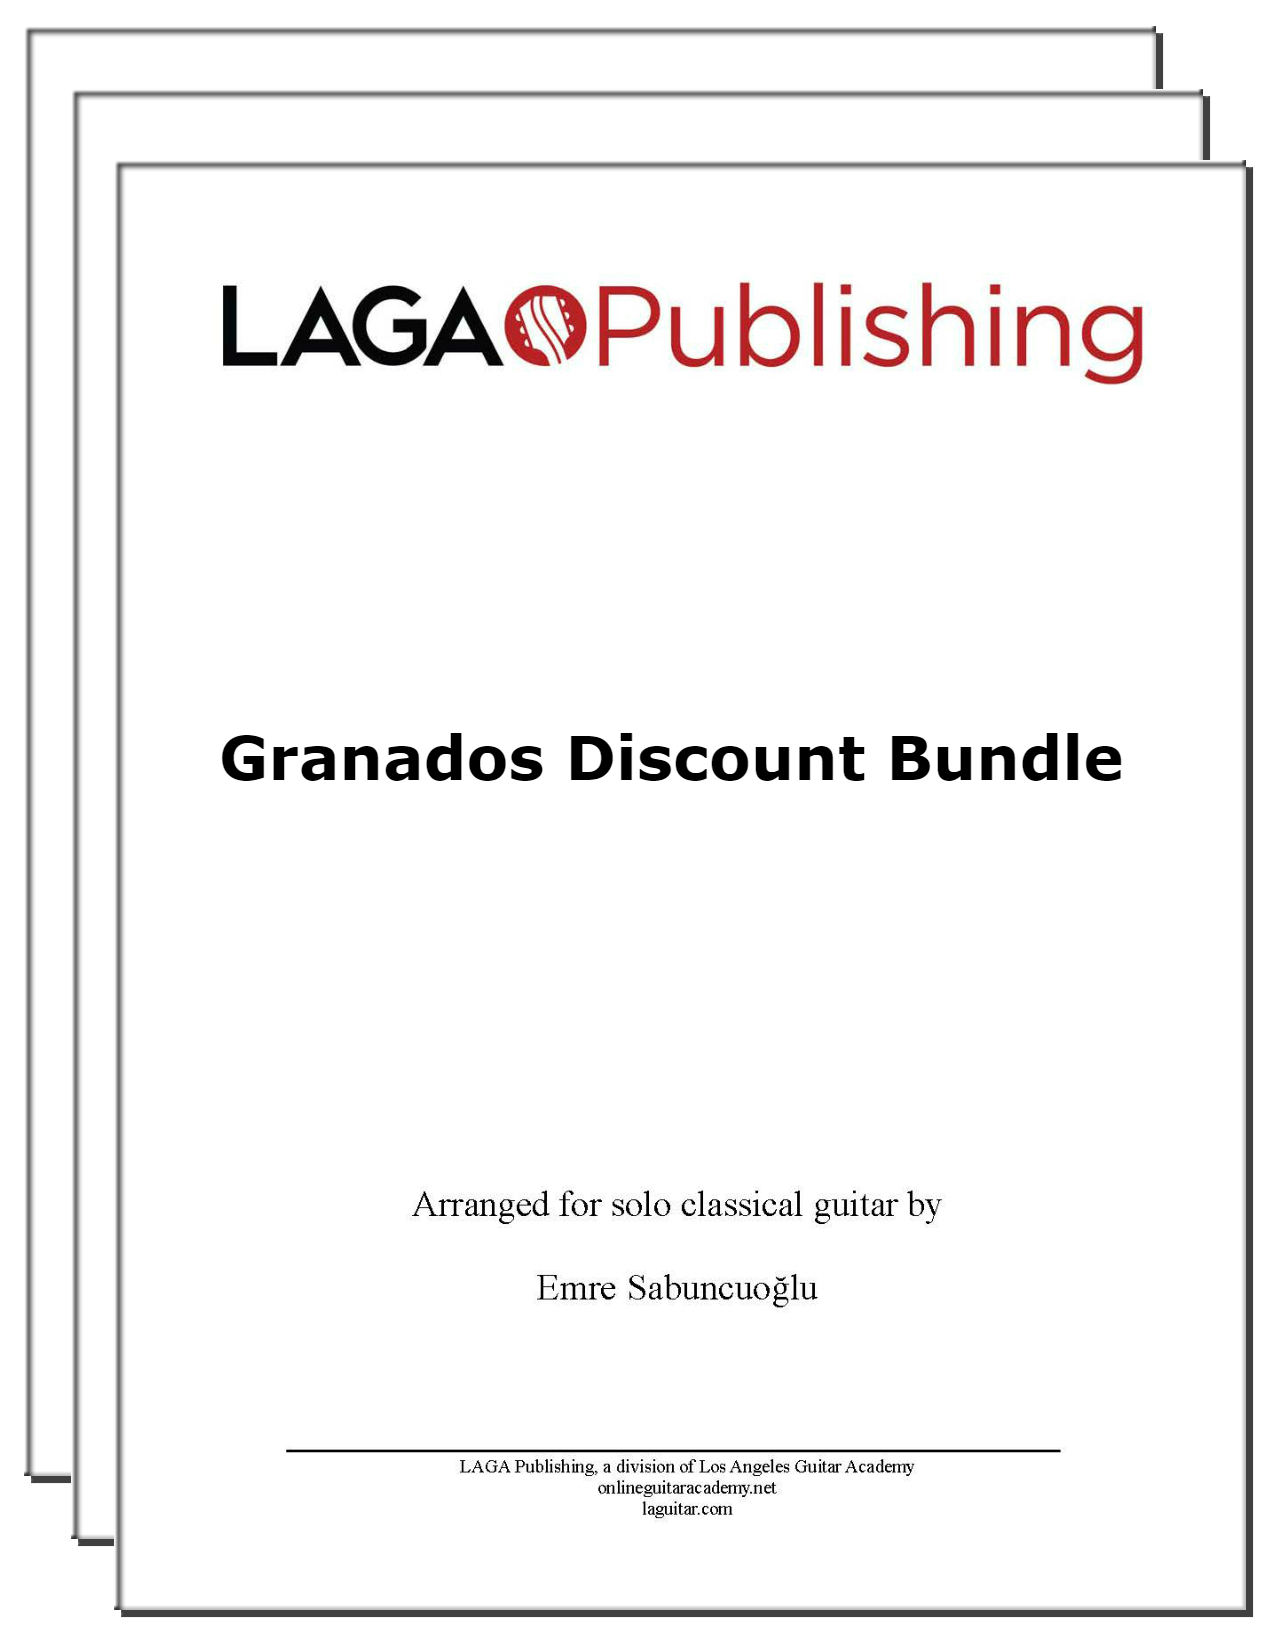 LAGA-Publishing-granados-discount-bundle